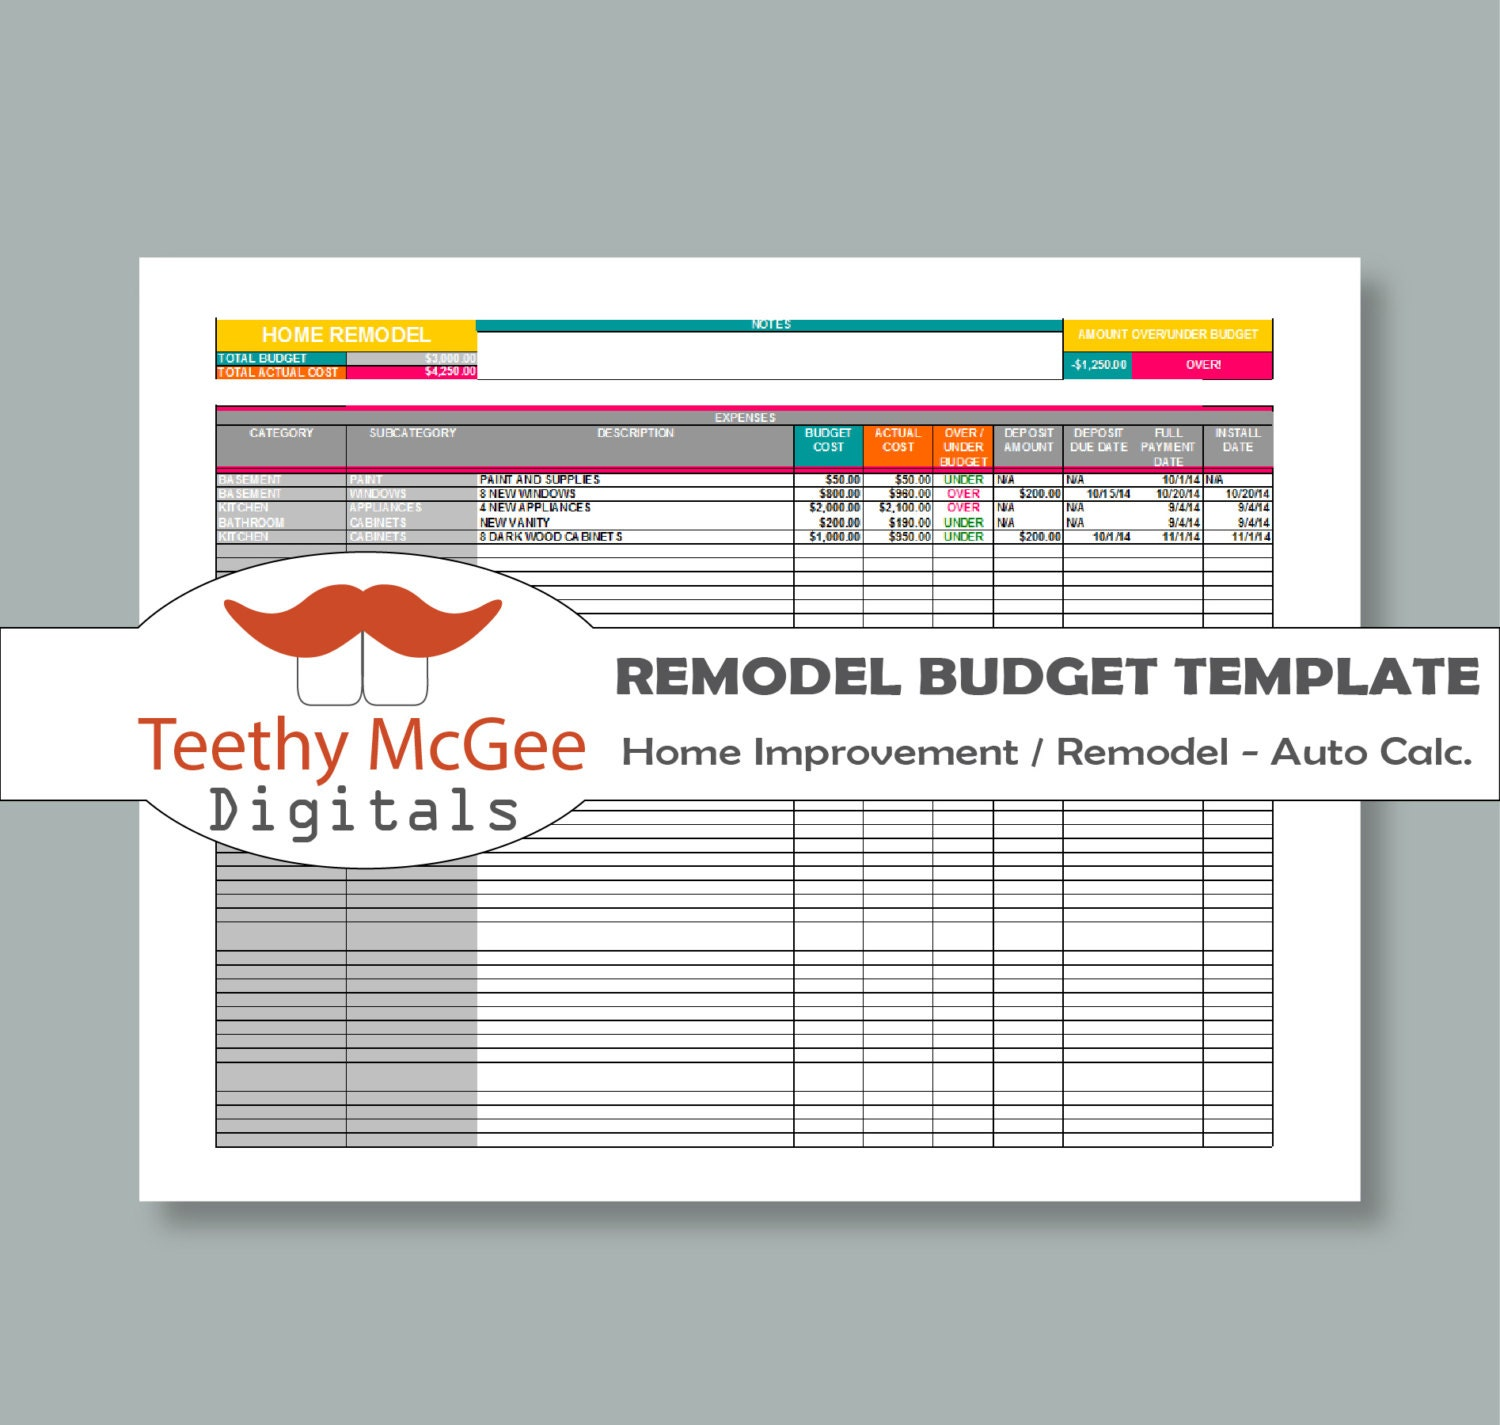 Home improvement remodel budget template instant download Home improvement software free